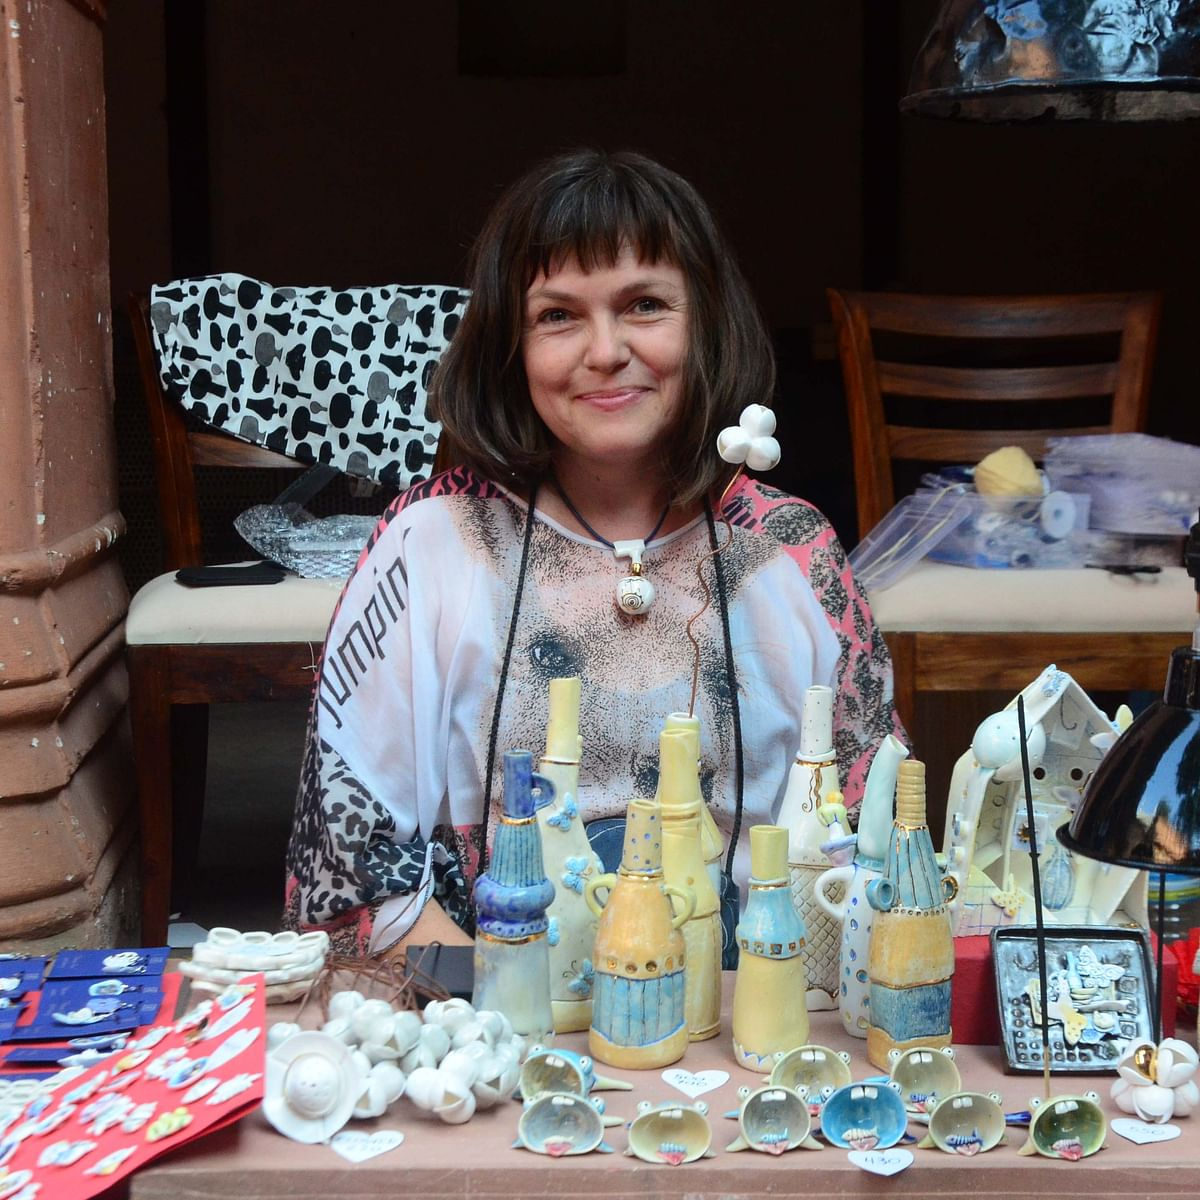 Bhopal: From Russia with love: Renata showcases her ware at potters' event